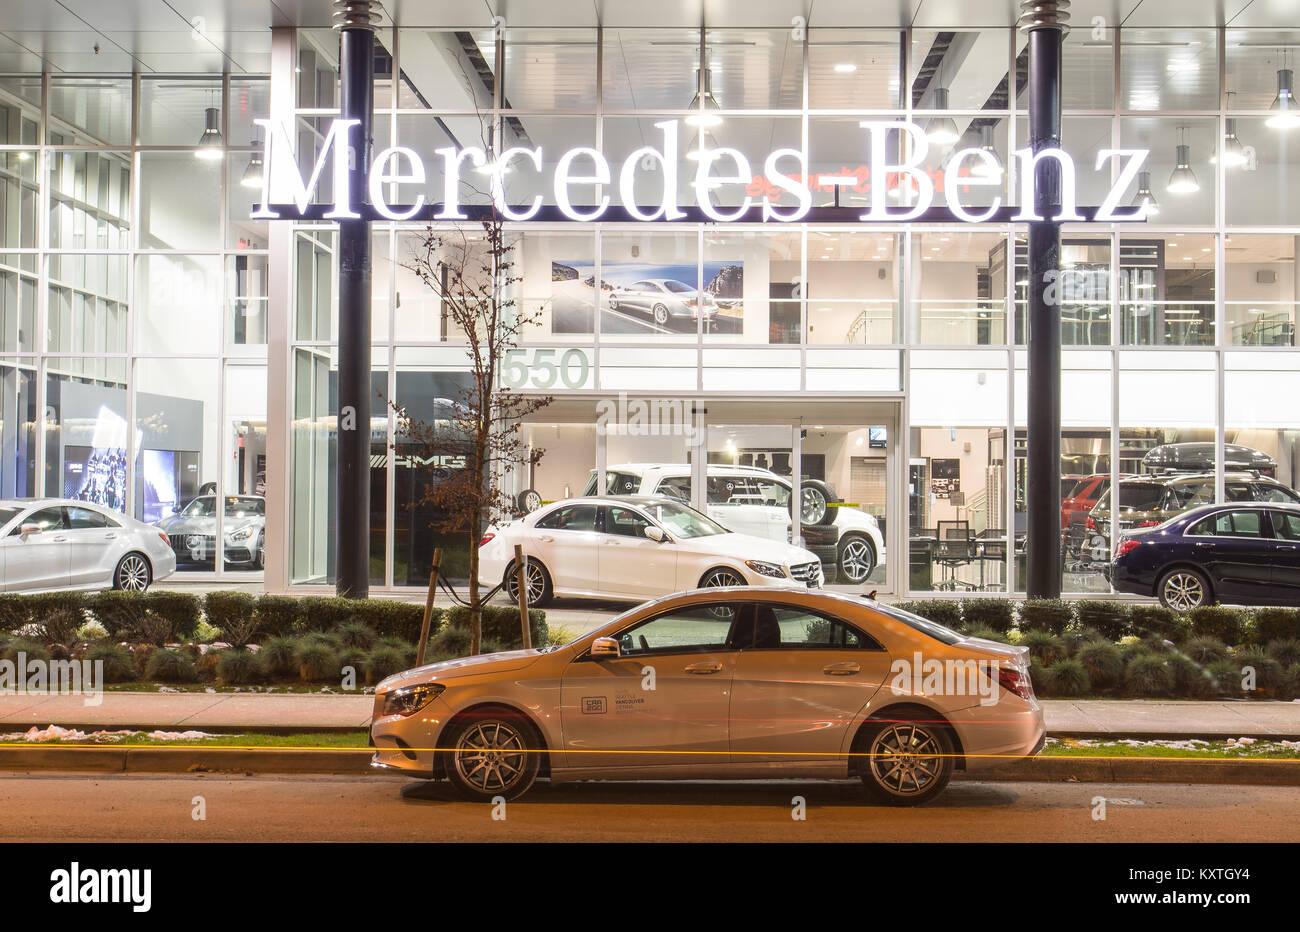 Mercedes benz car dealership night stock photos mercedes for Dealer mercedes benz